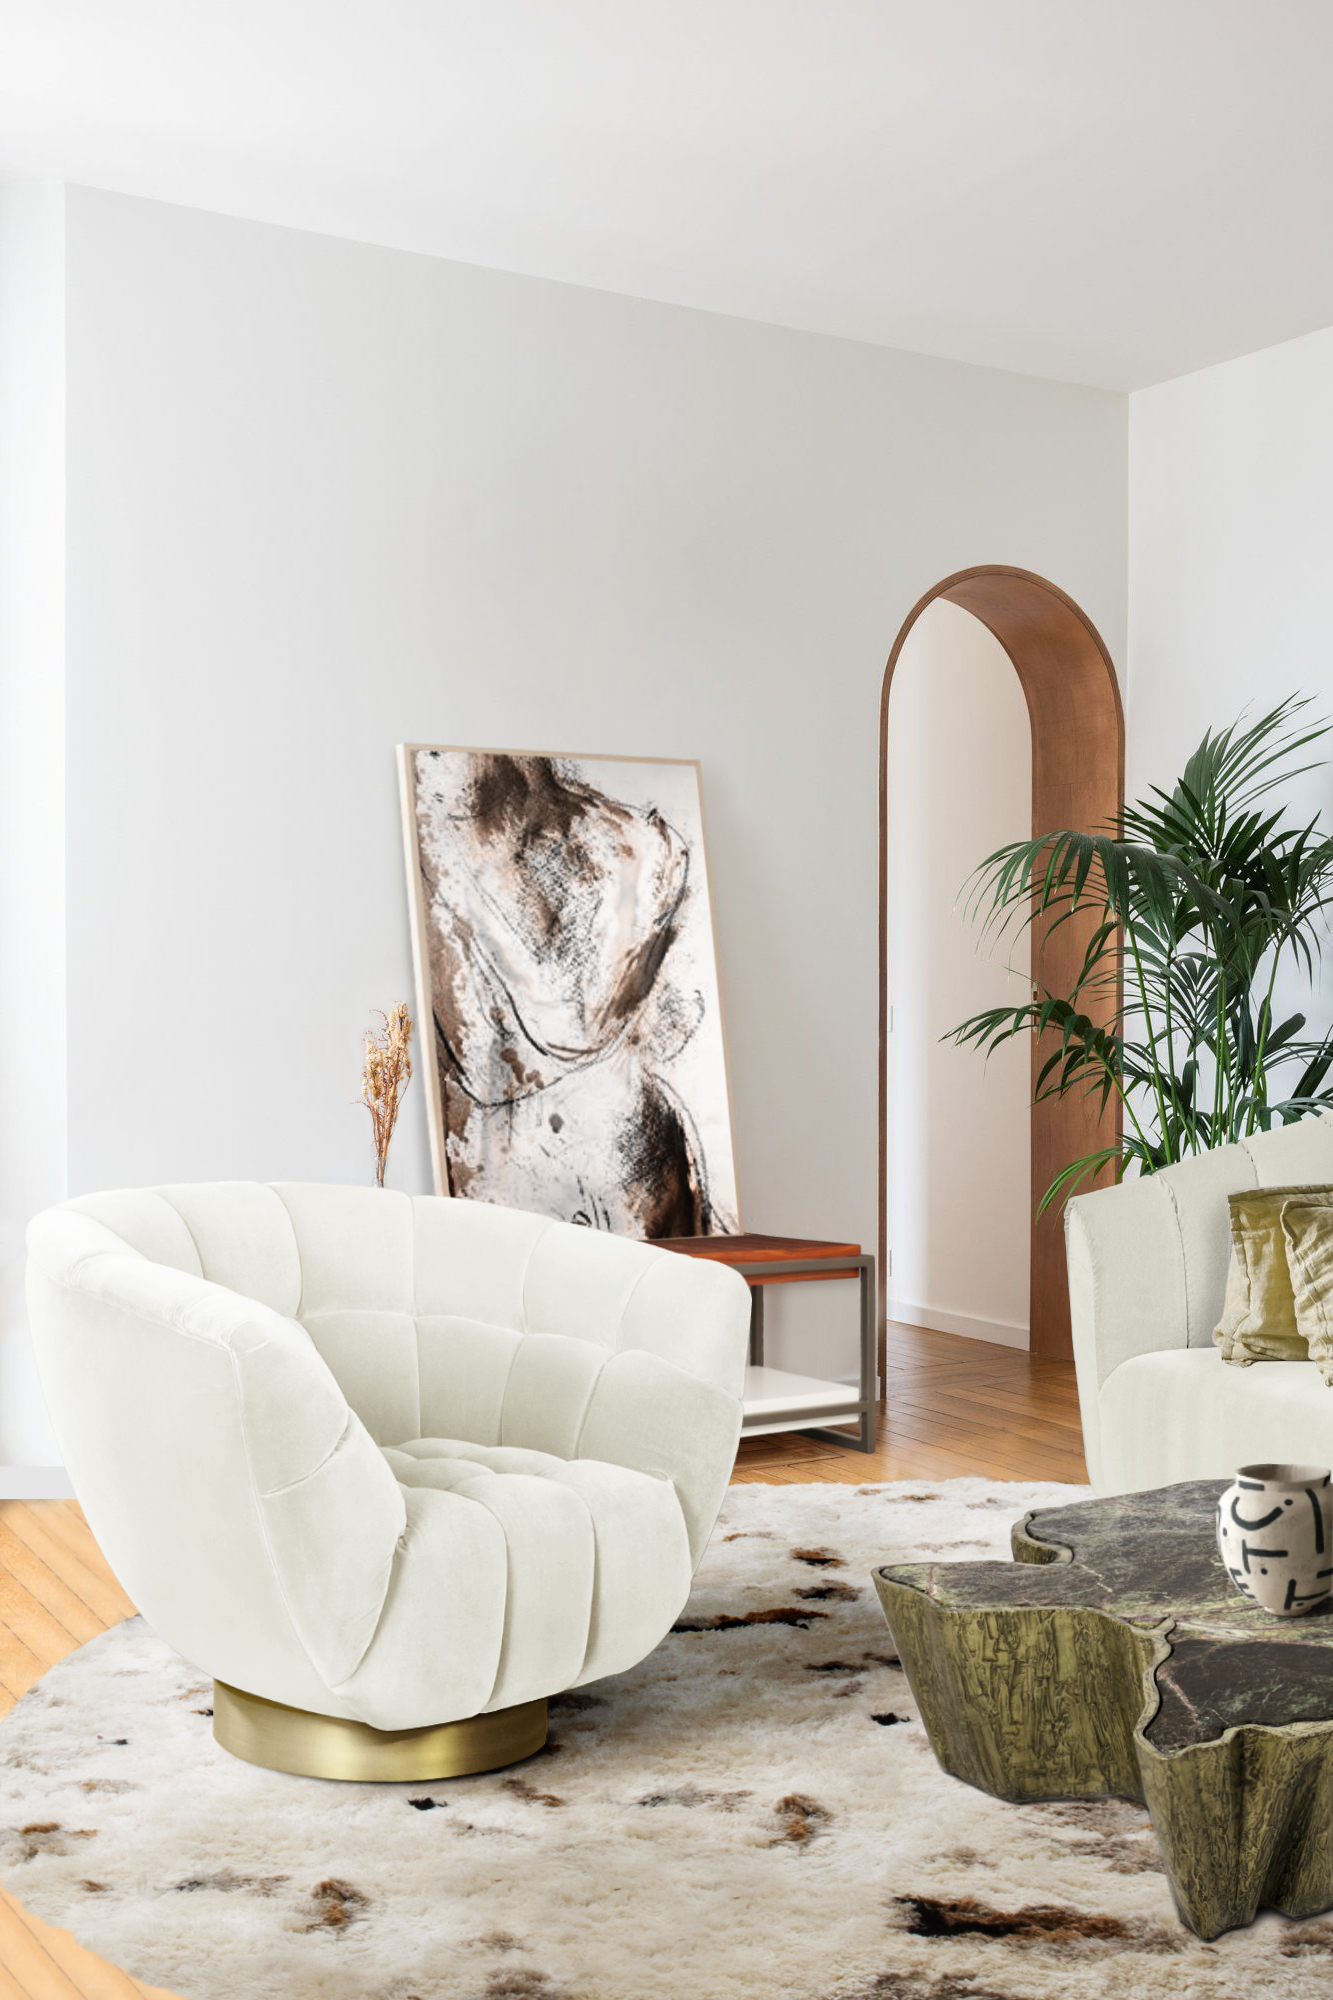 Living Room: Where to find inspiration?